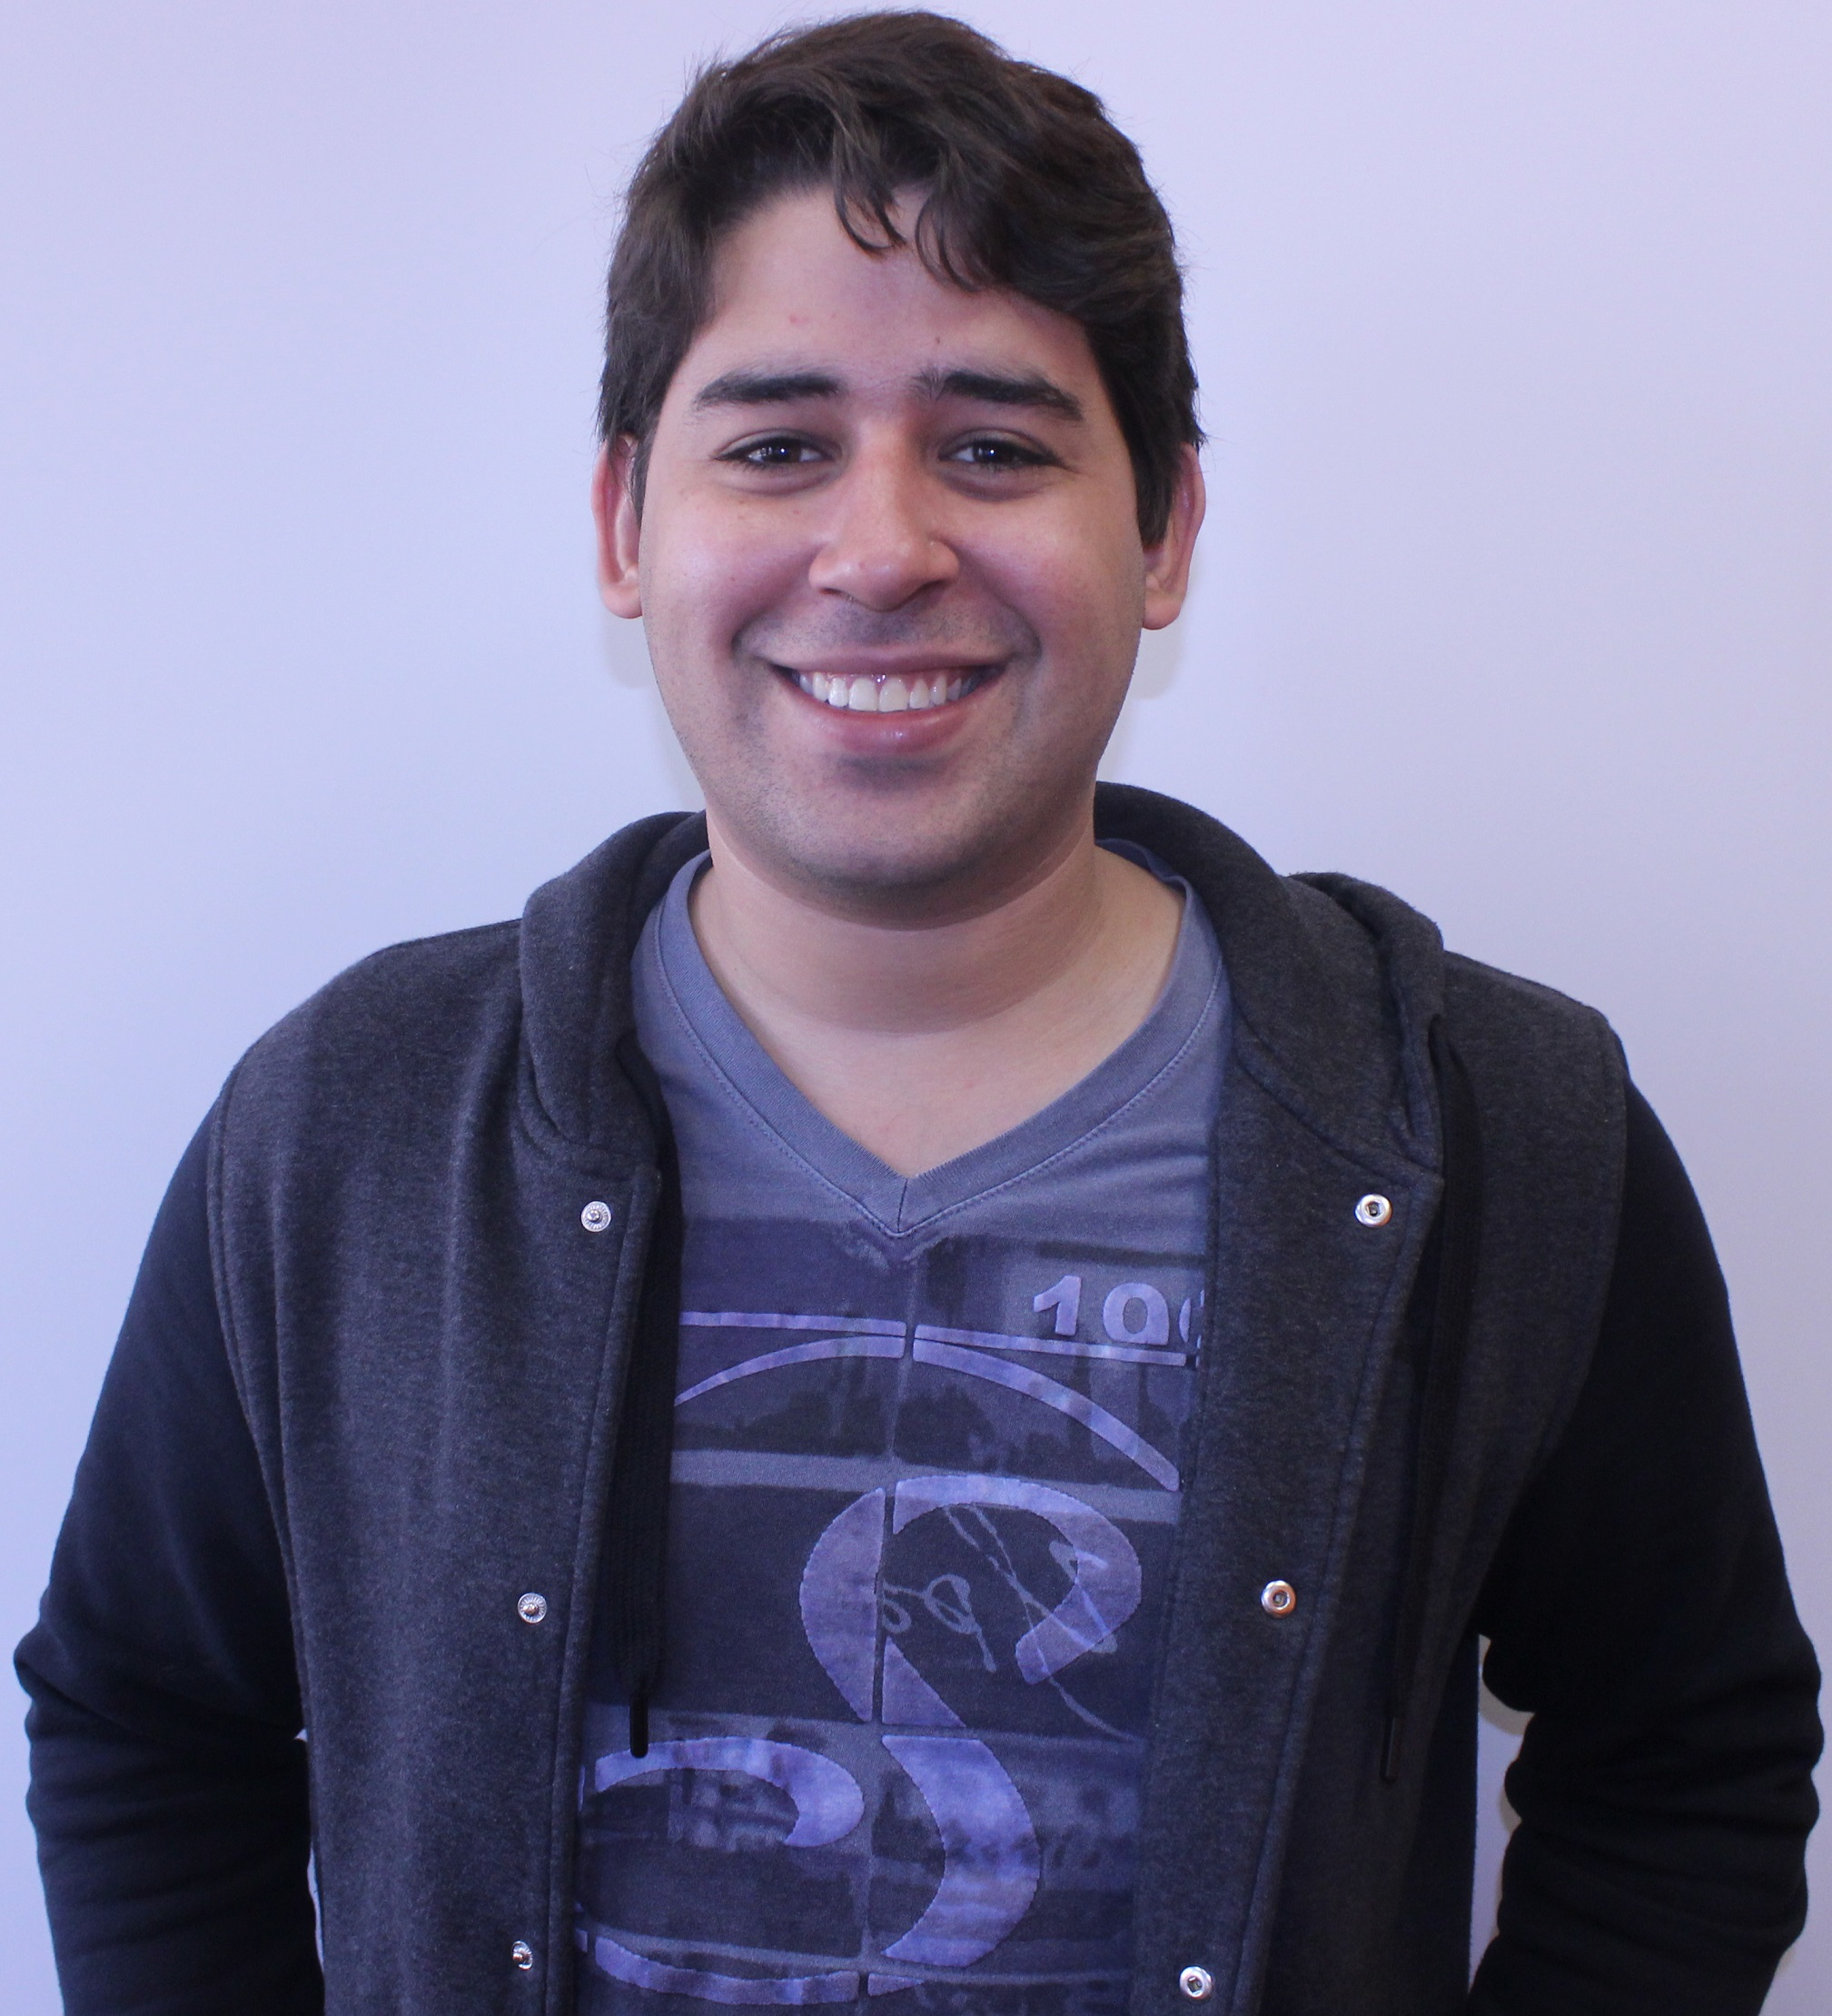 Jose Augusto from Brazil came to EC to learn English in Canada